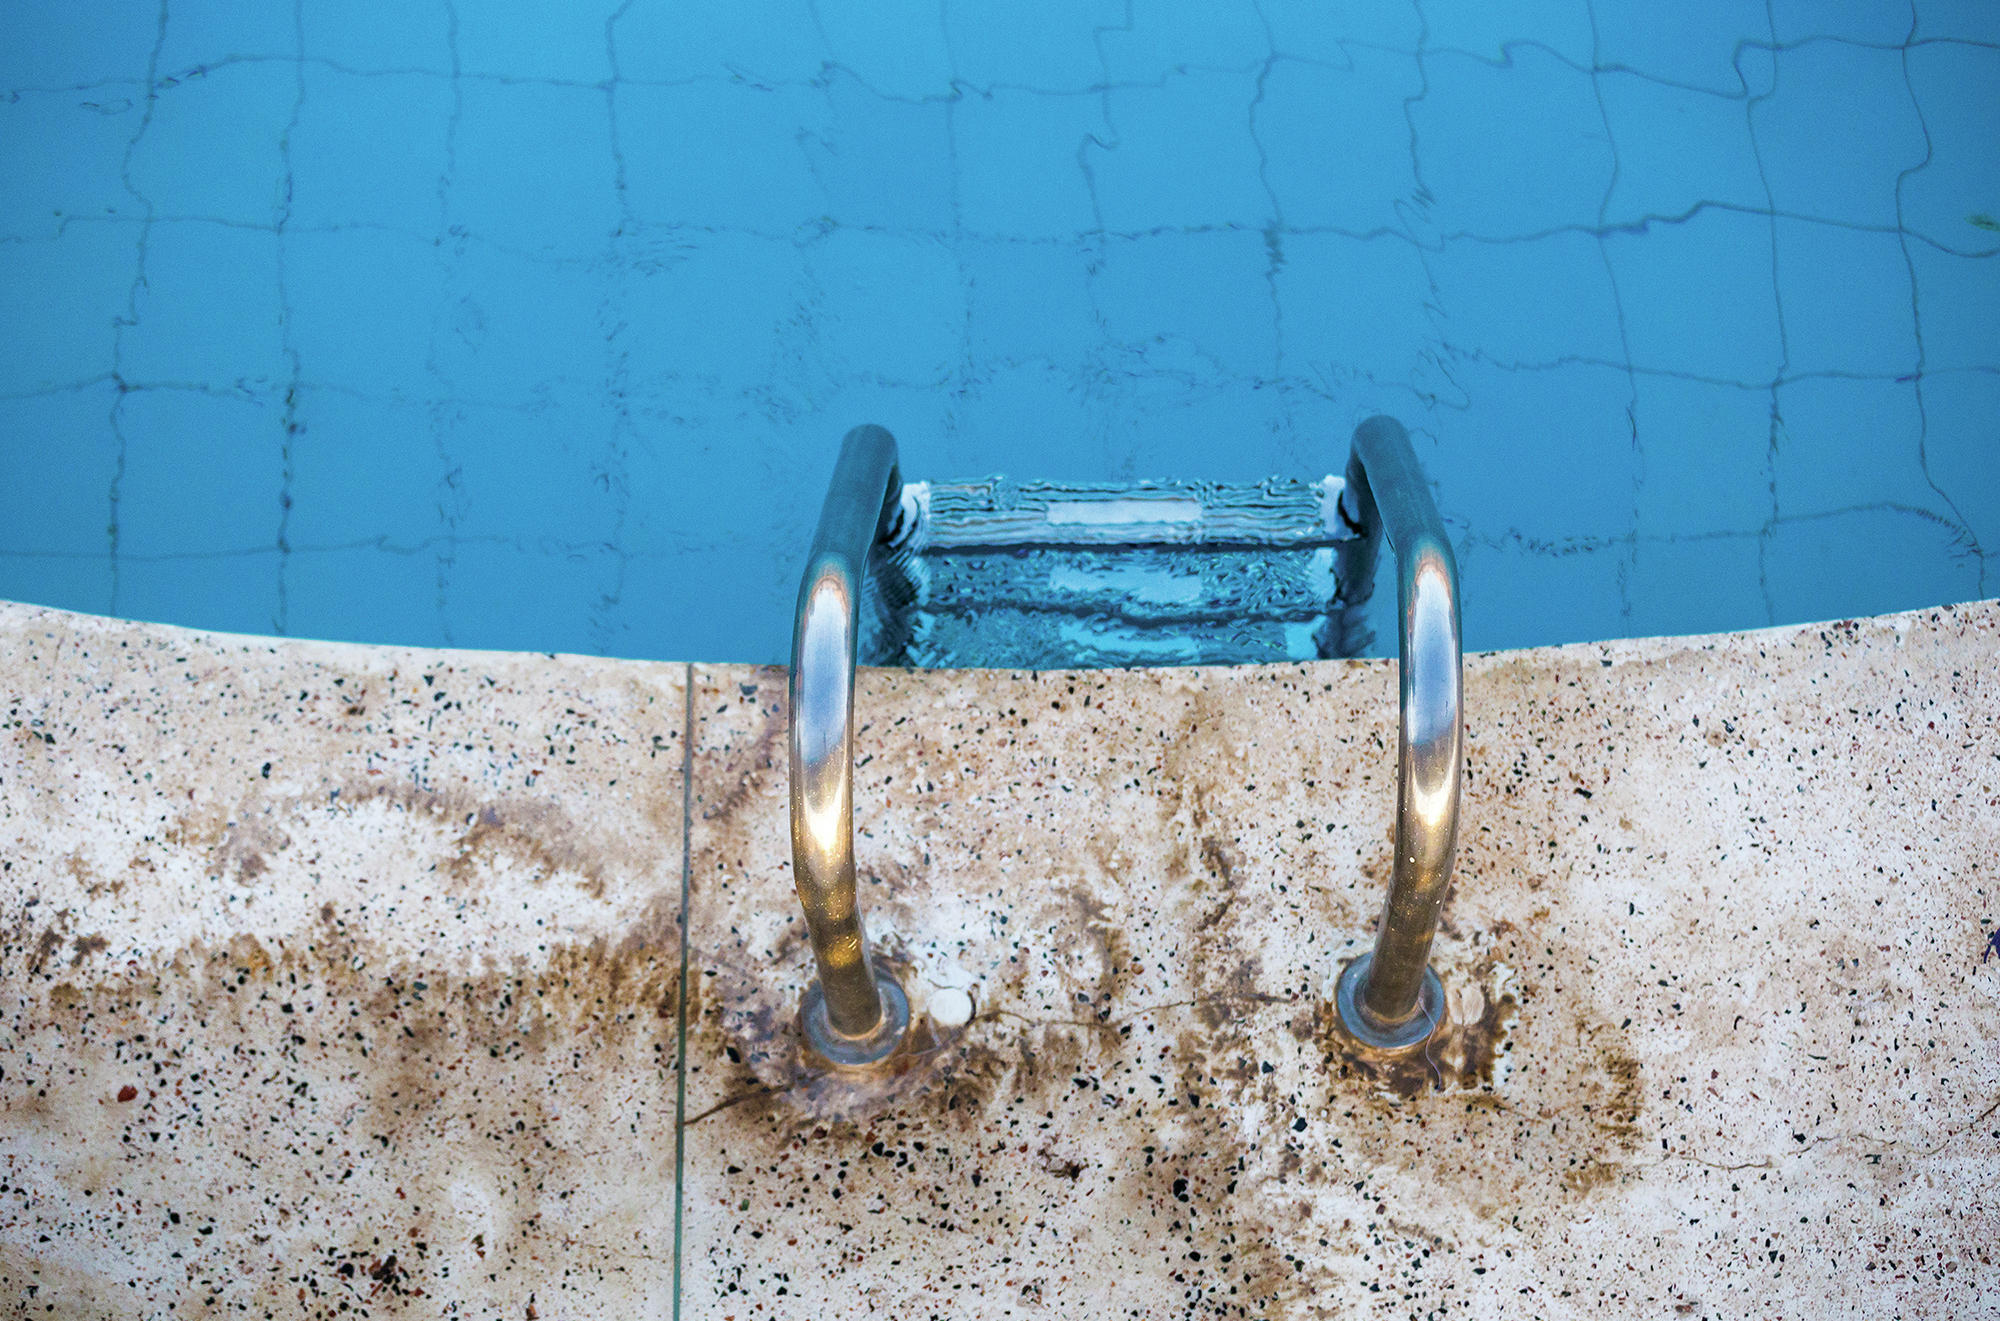 Just How Much Pee Is In That Pool Kuow News And Information